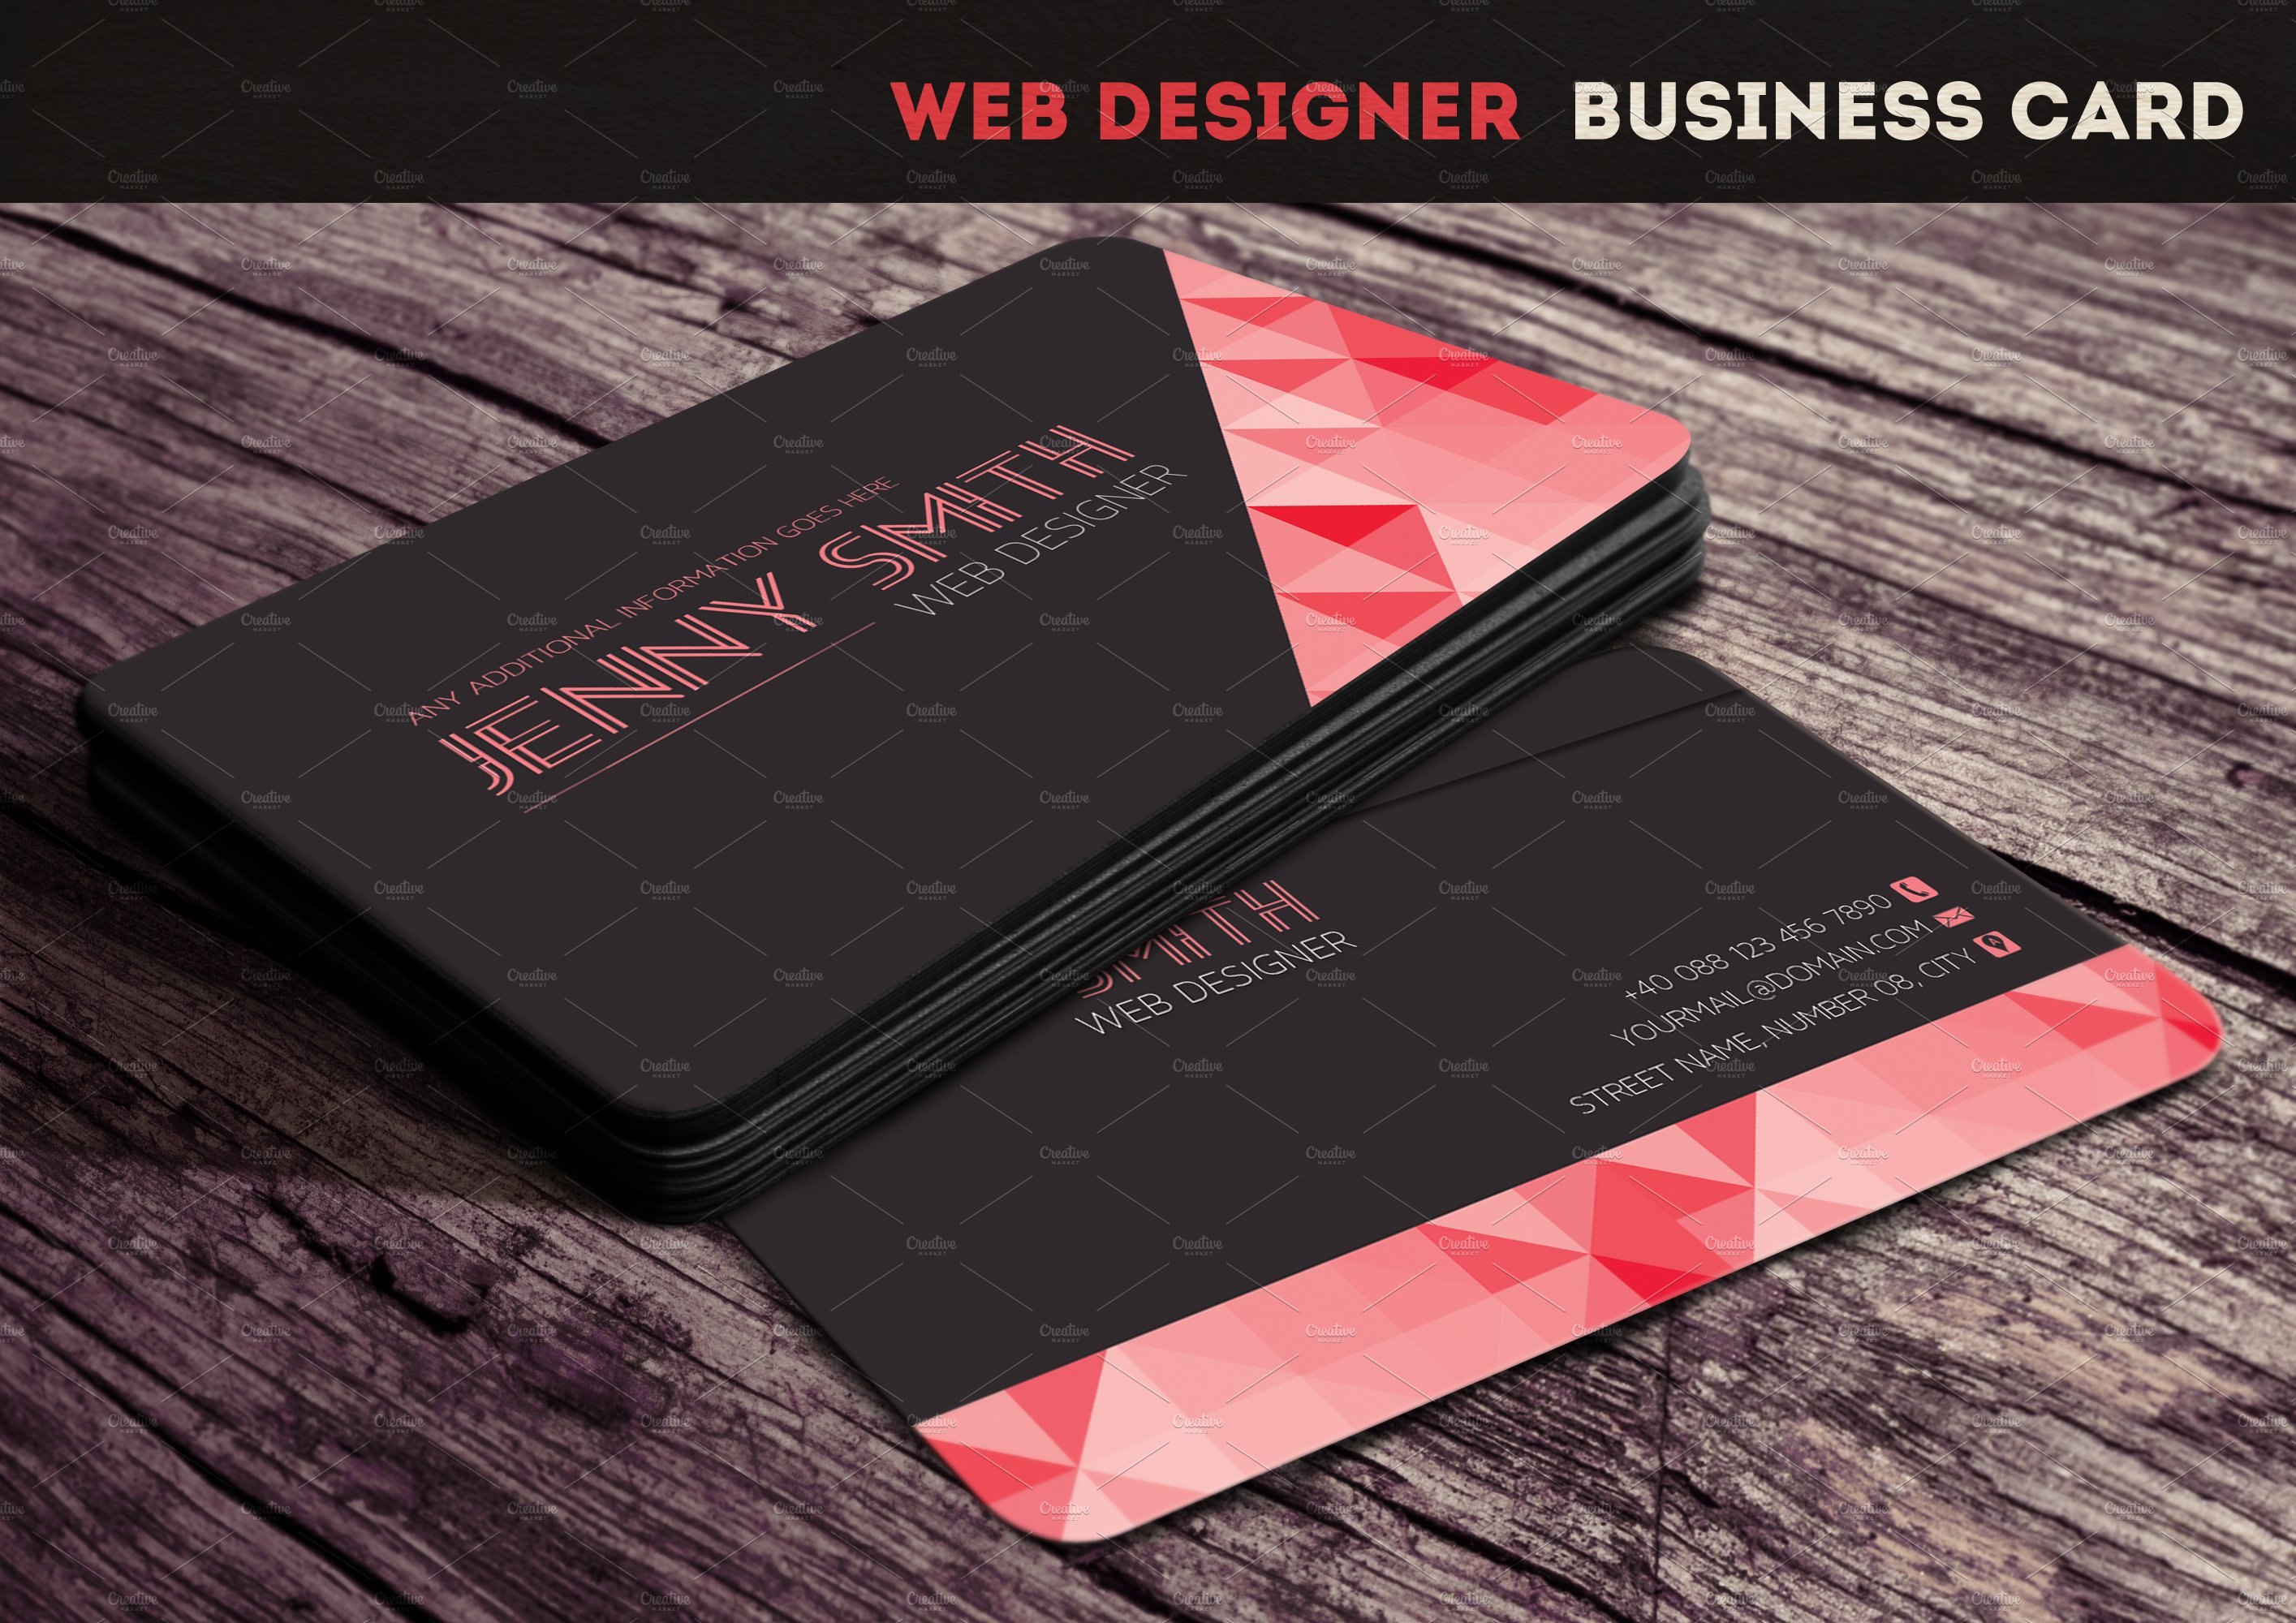 Web designer business card business card templates creative market cheaphphosting Image collections